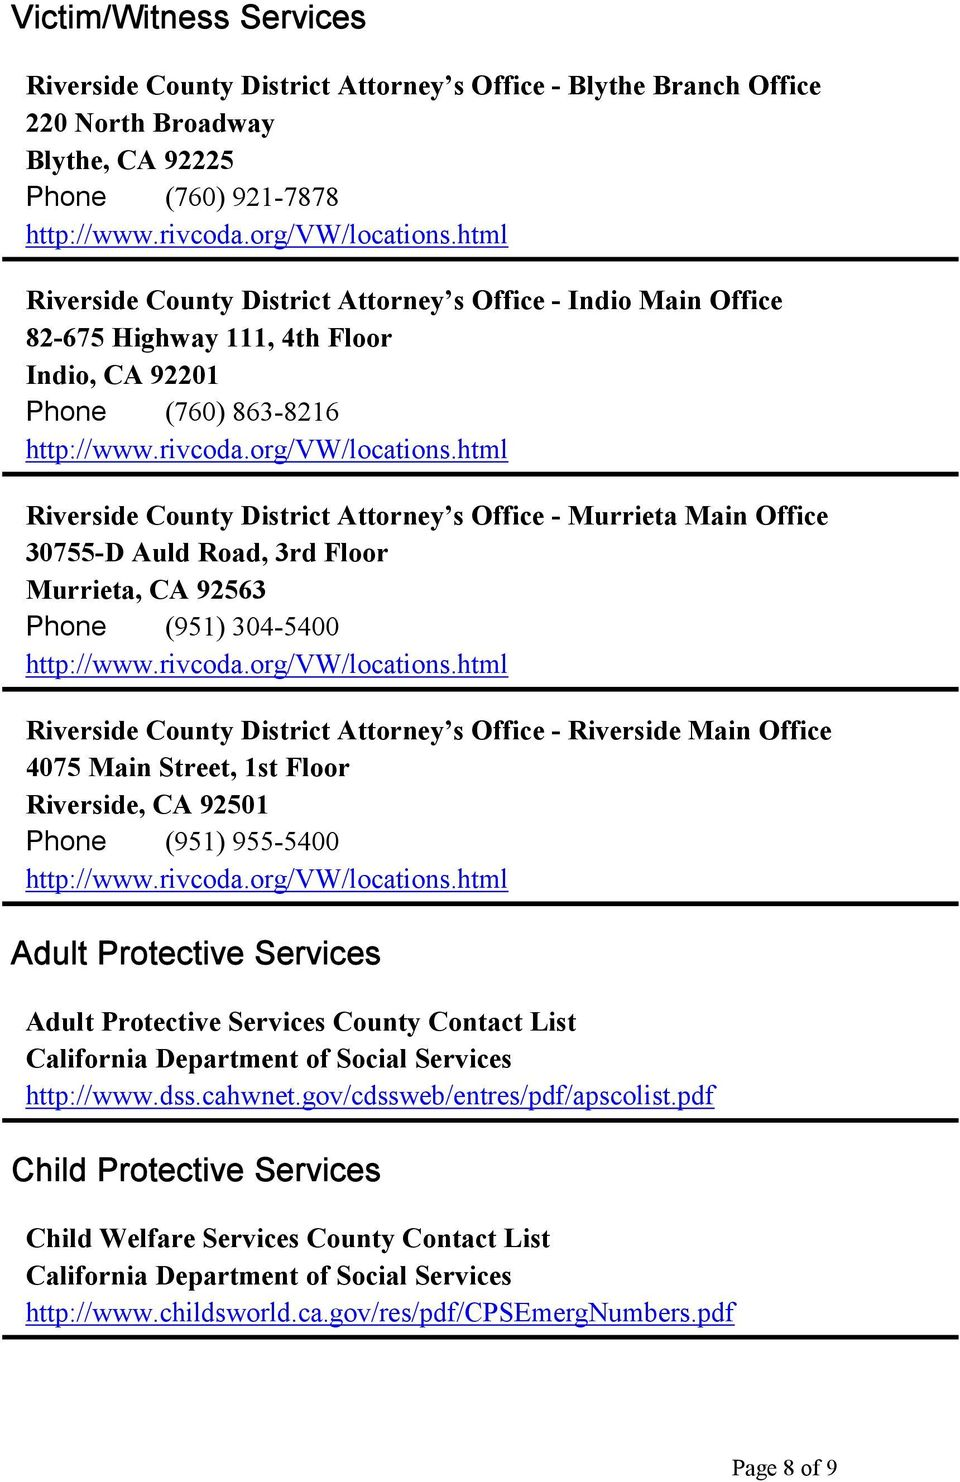 Riverside County District Attorney s Office - Riverside Main Office 4075 Main Street, 1st Floor Riverside, CA 92501 Phone (951) 955-5400 Adult Protective Services Adult Protective Services County